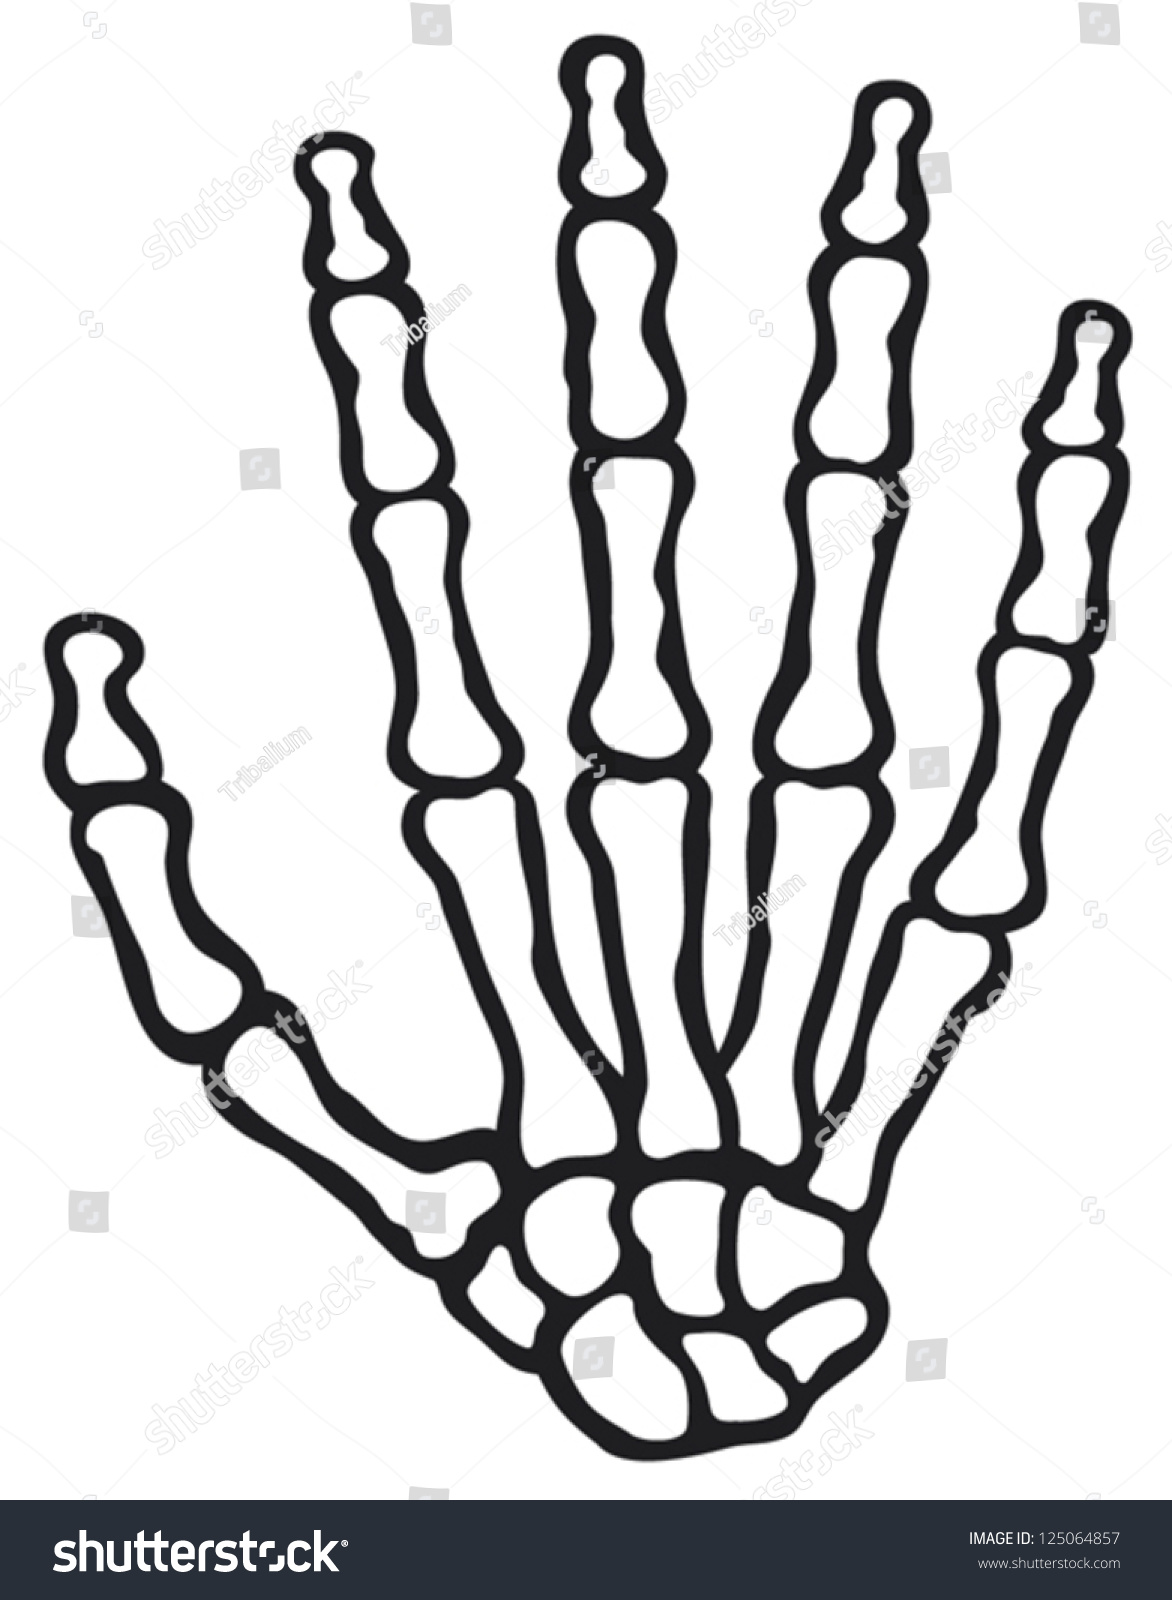 Human Skeleton Hand Bones Stock Vector